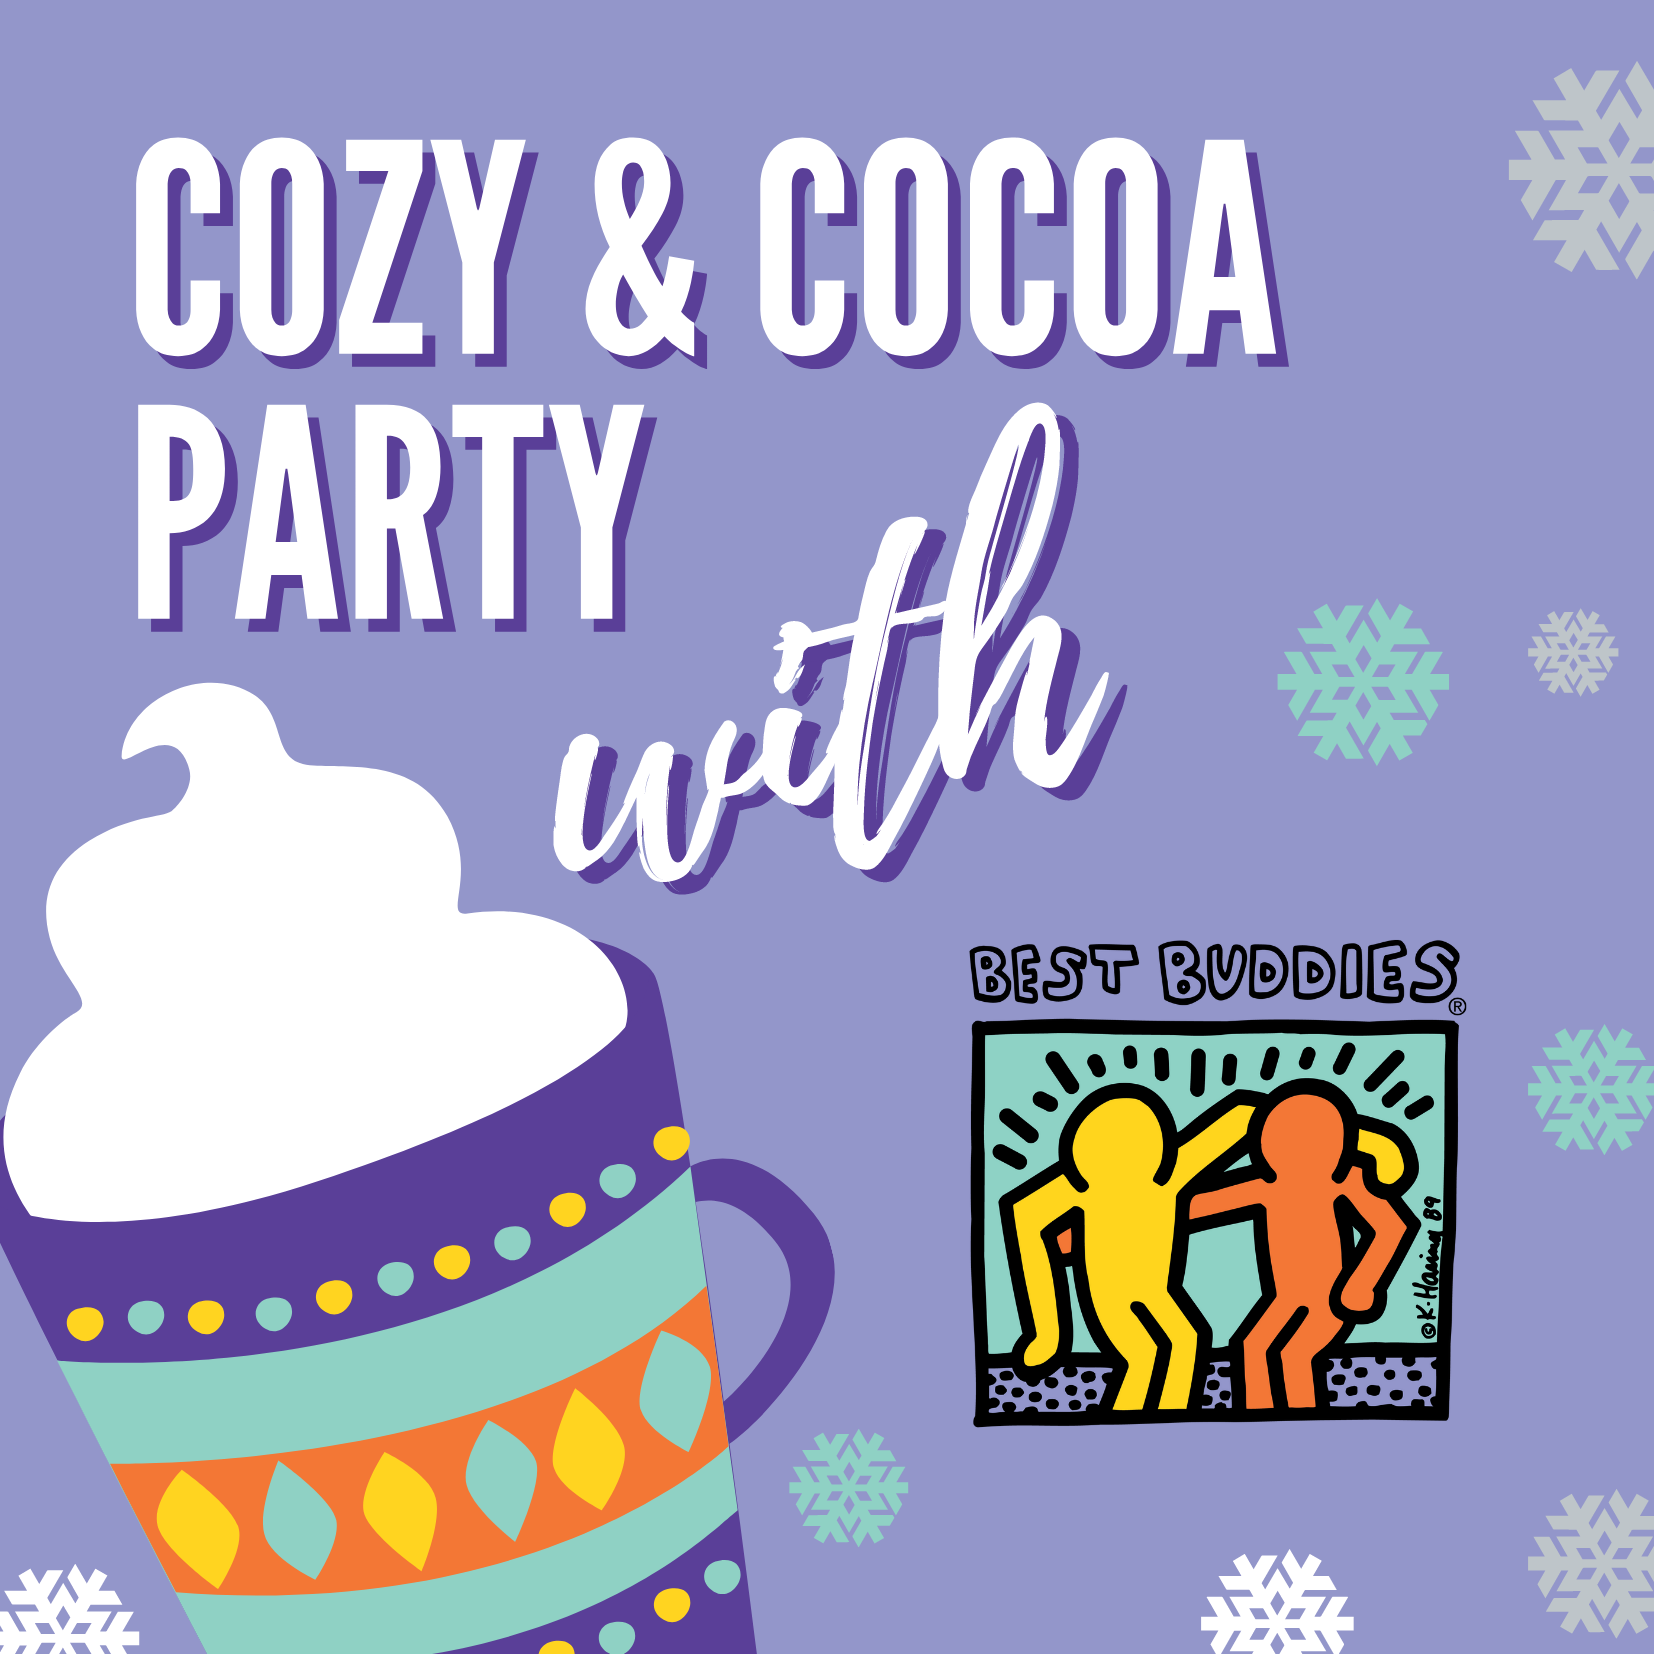 Best Buddies in Ohio Cozy & Cocoa Party Image Banner